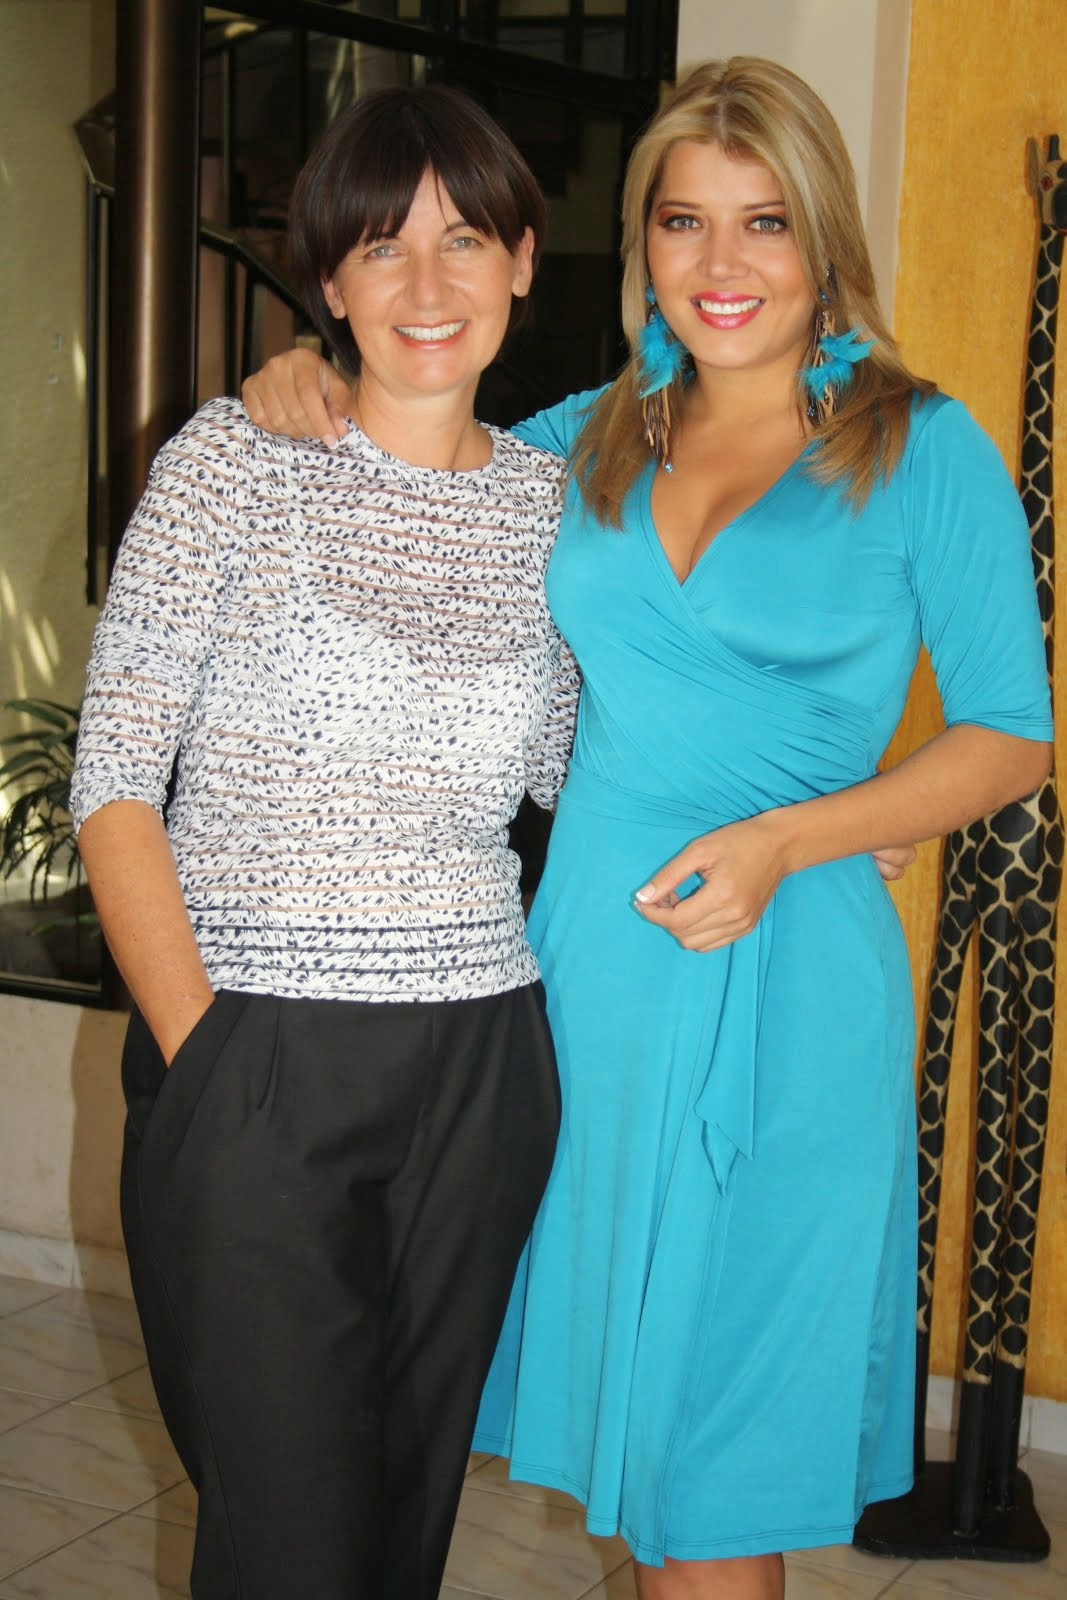 con MARIECRUZ RIBERA